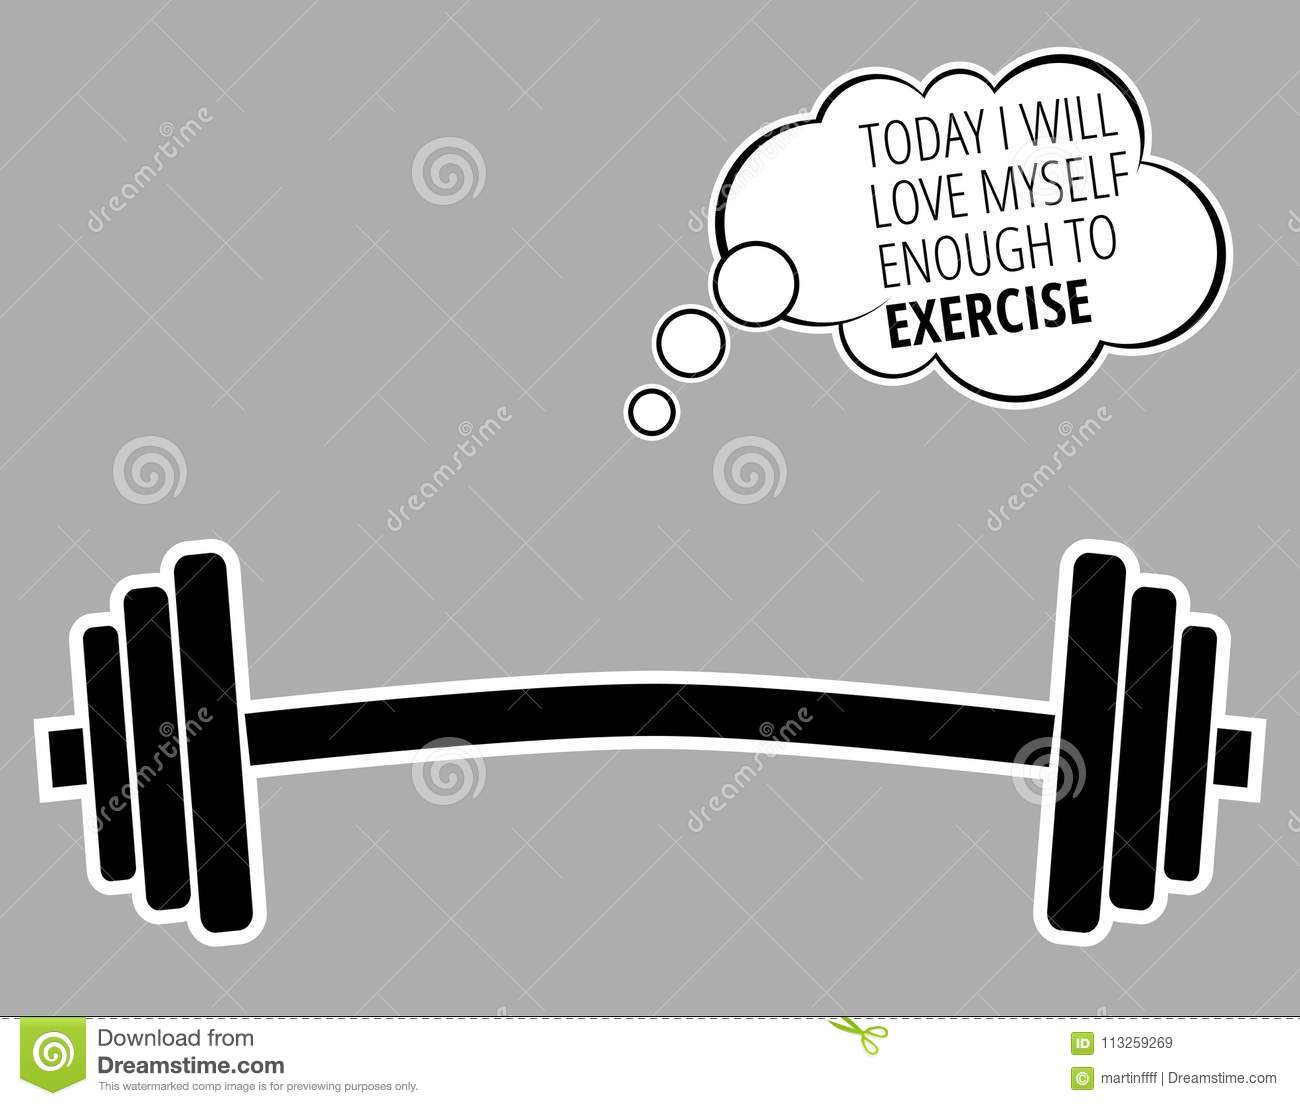 Today I Will Love Myself Enough To Exercise Motivational Quote About Workout Fitness Gym And Bodybuilding Vector Stock Vector Illustration Of Motivation Lifting 113259269